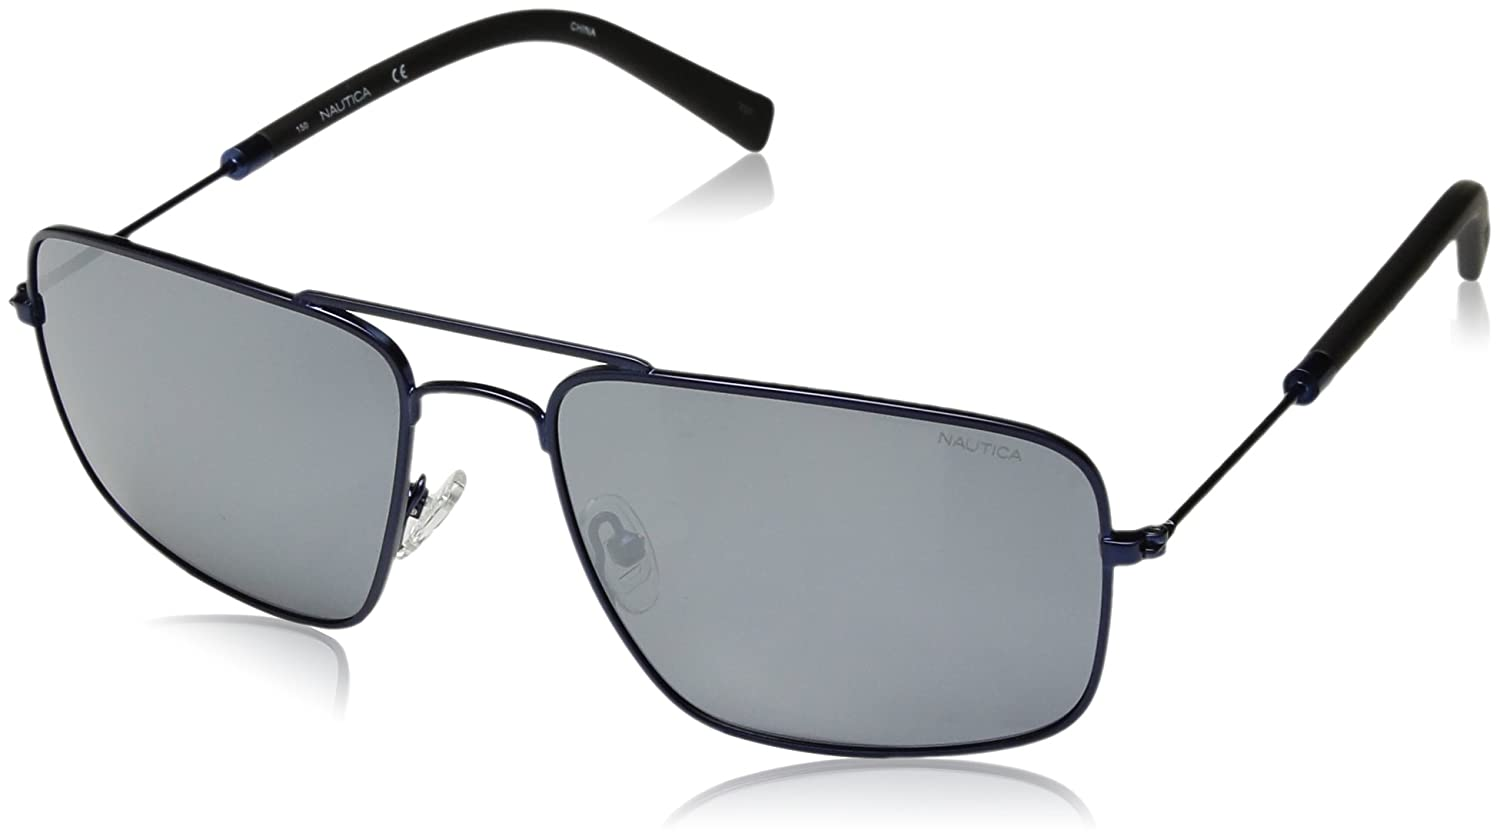 Amazon.com: Nautica Men s n4632sp polarizadas Aviator ...